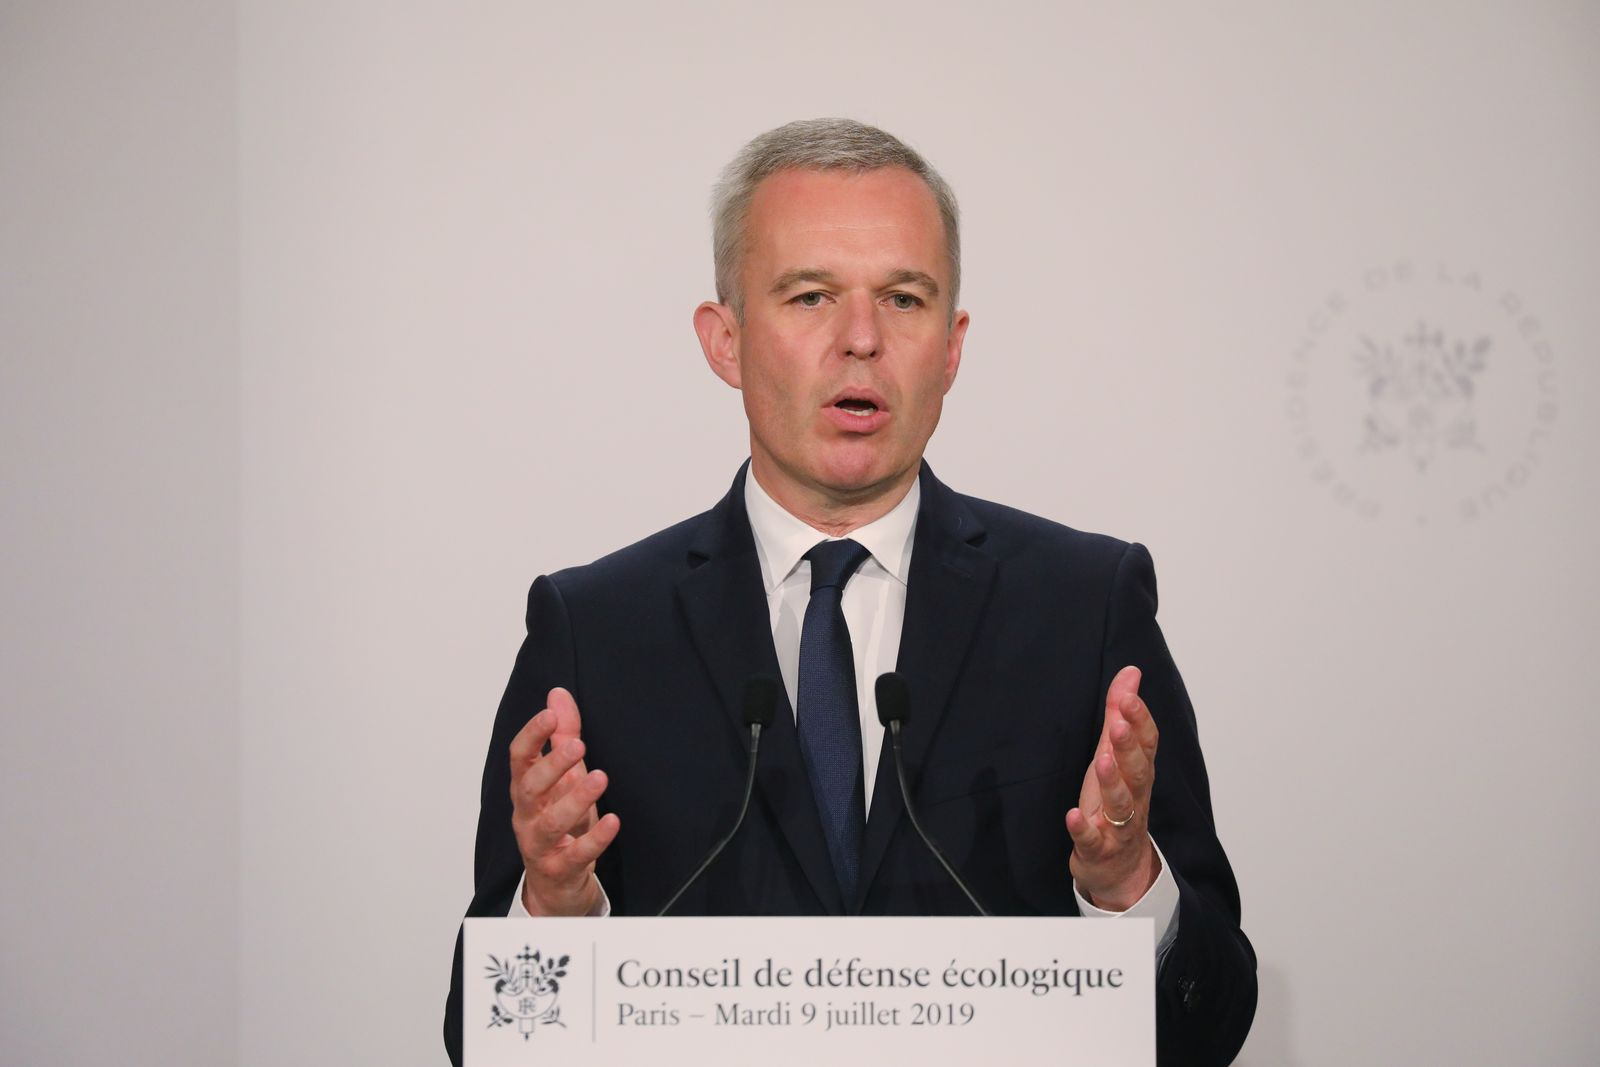 FILE - In this July 9, 2019 file photo, French Ecology Minister Francois de Rugy gives a press conference during an Ecological Defense Council, in Paris. Francois de Rugy resigned Tuesday July 16, 2019 over reports of publicly funded lavish lifestyle. (Ludovic Marin/POOL via AP, File)